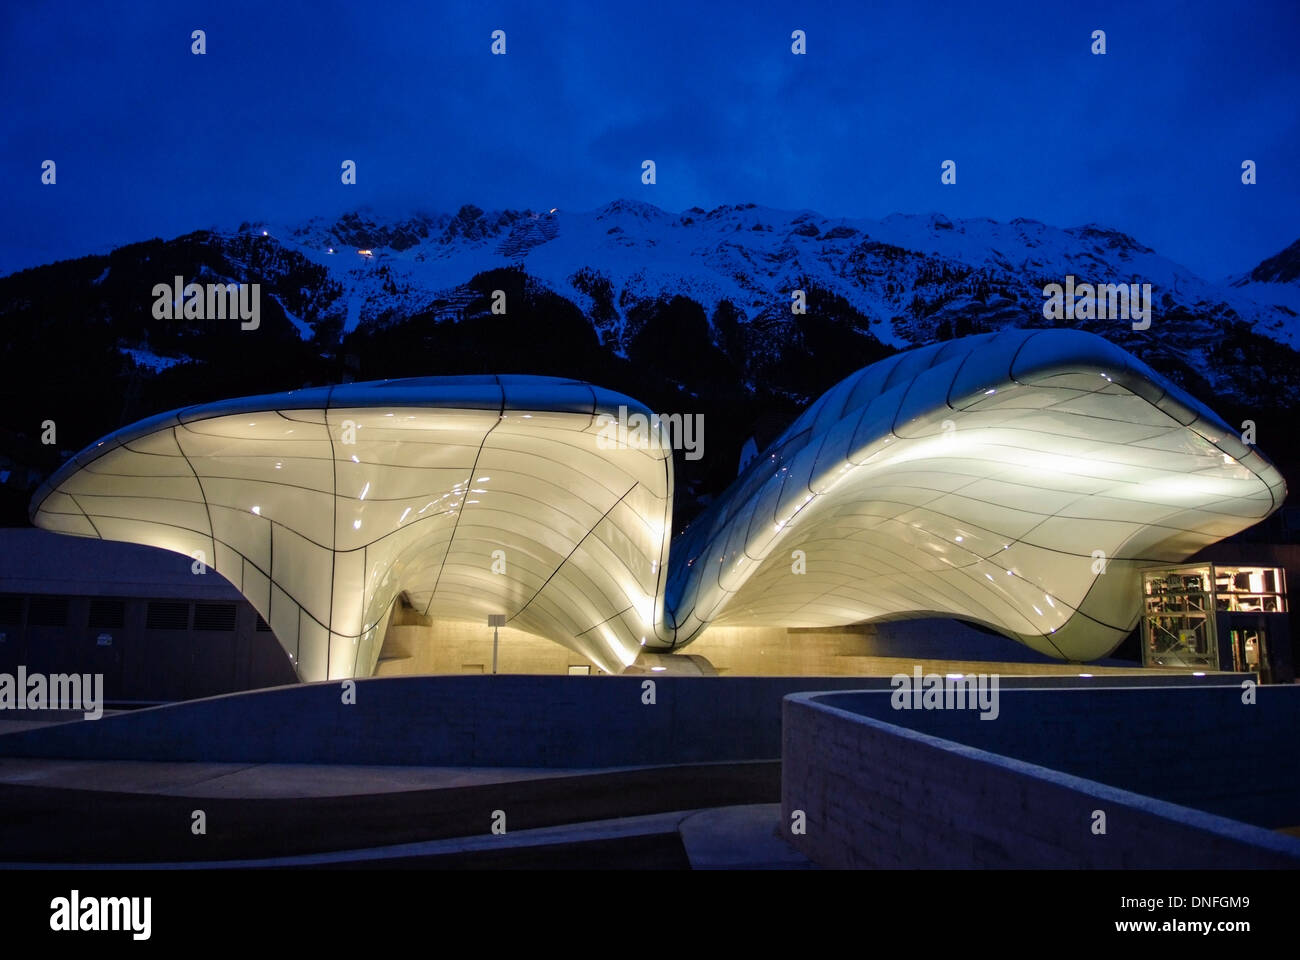 hungerburgbahn innsbruck bergstation zaha hadid moderne stock photo royalty free image. Black Bedroom Furniture Sets. Home Design Ideas